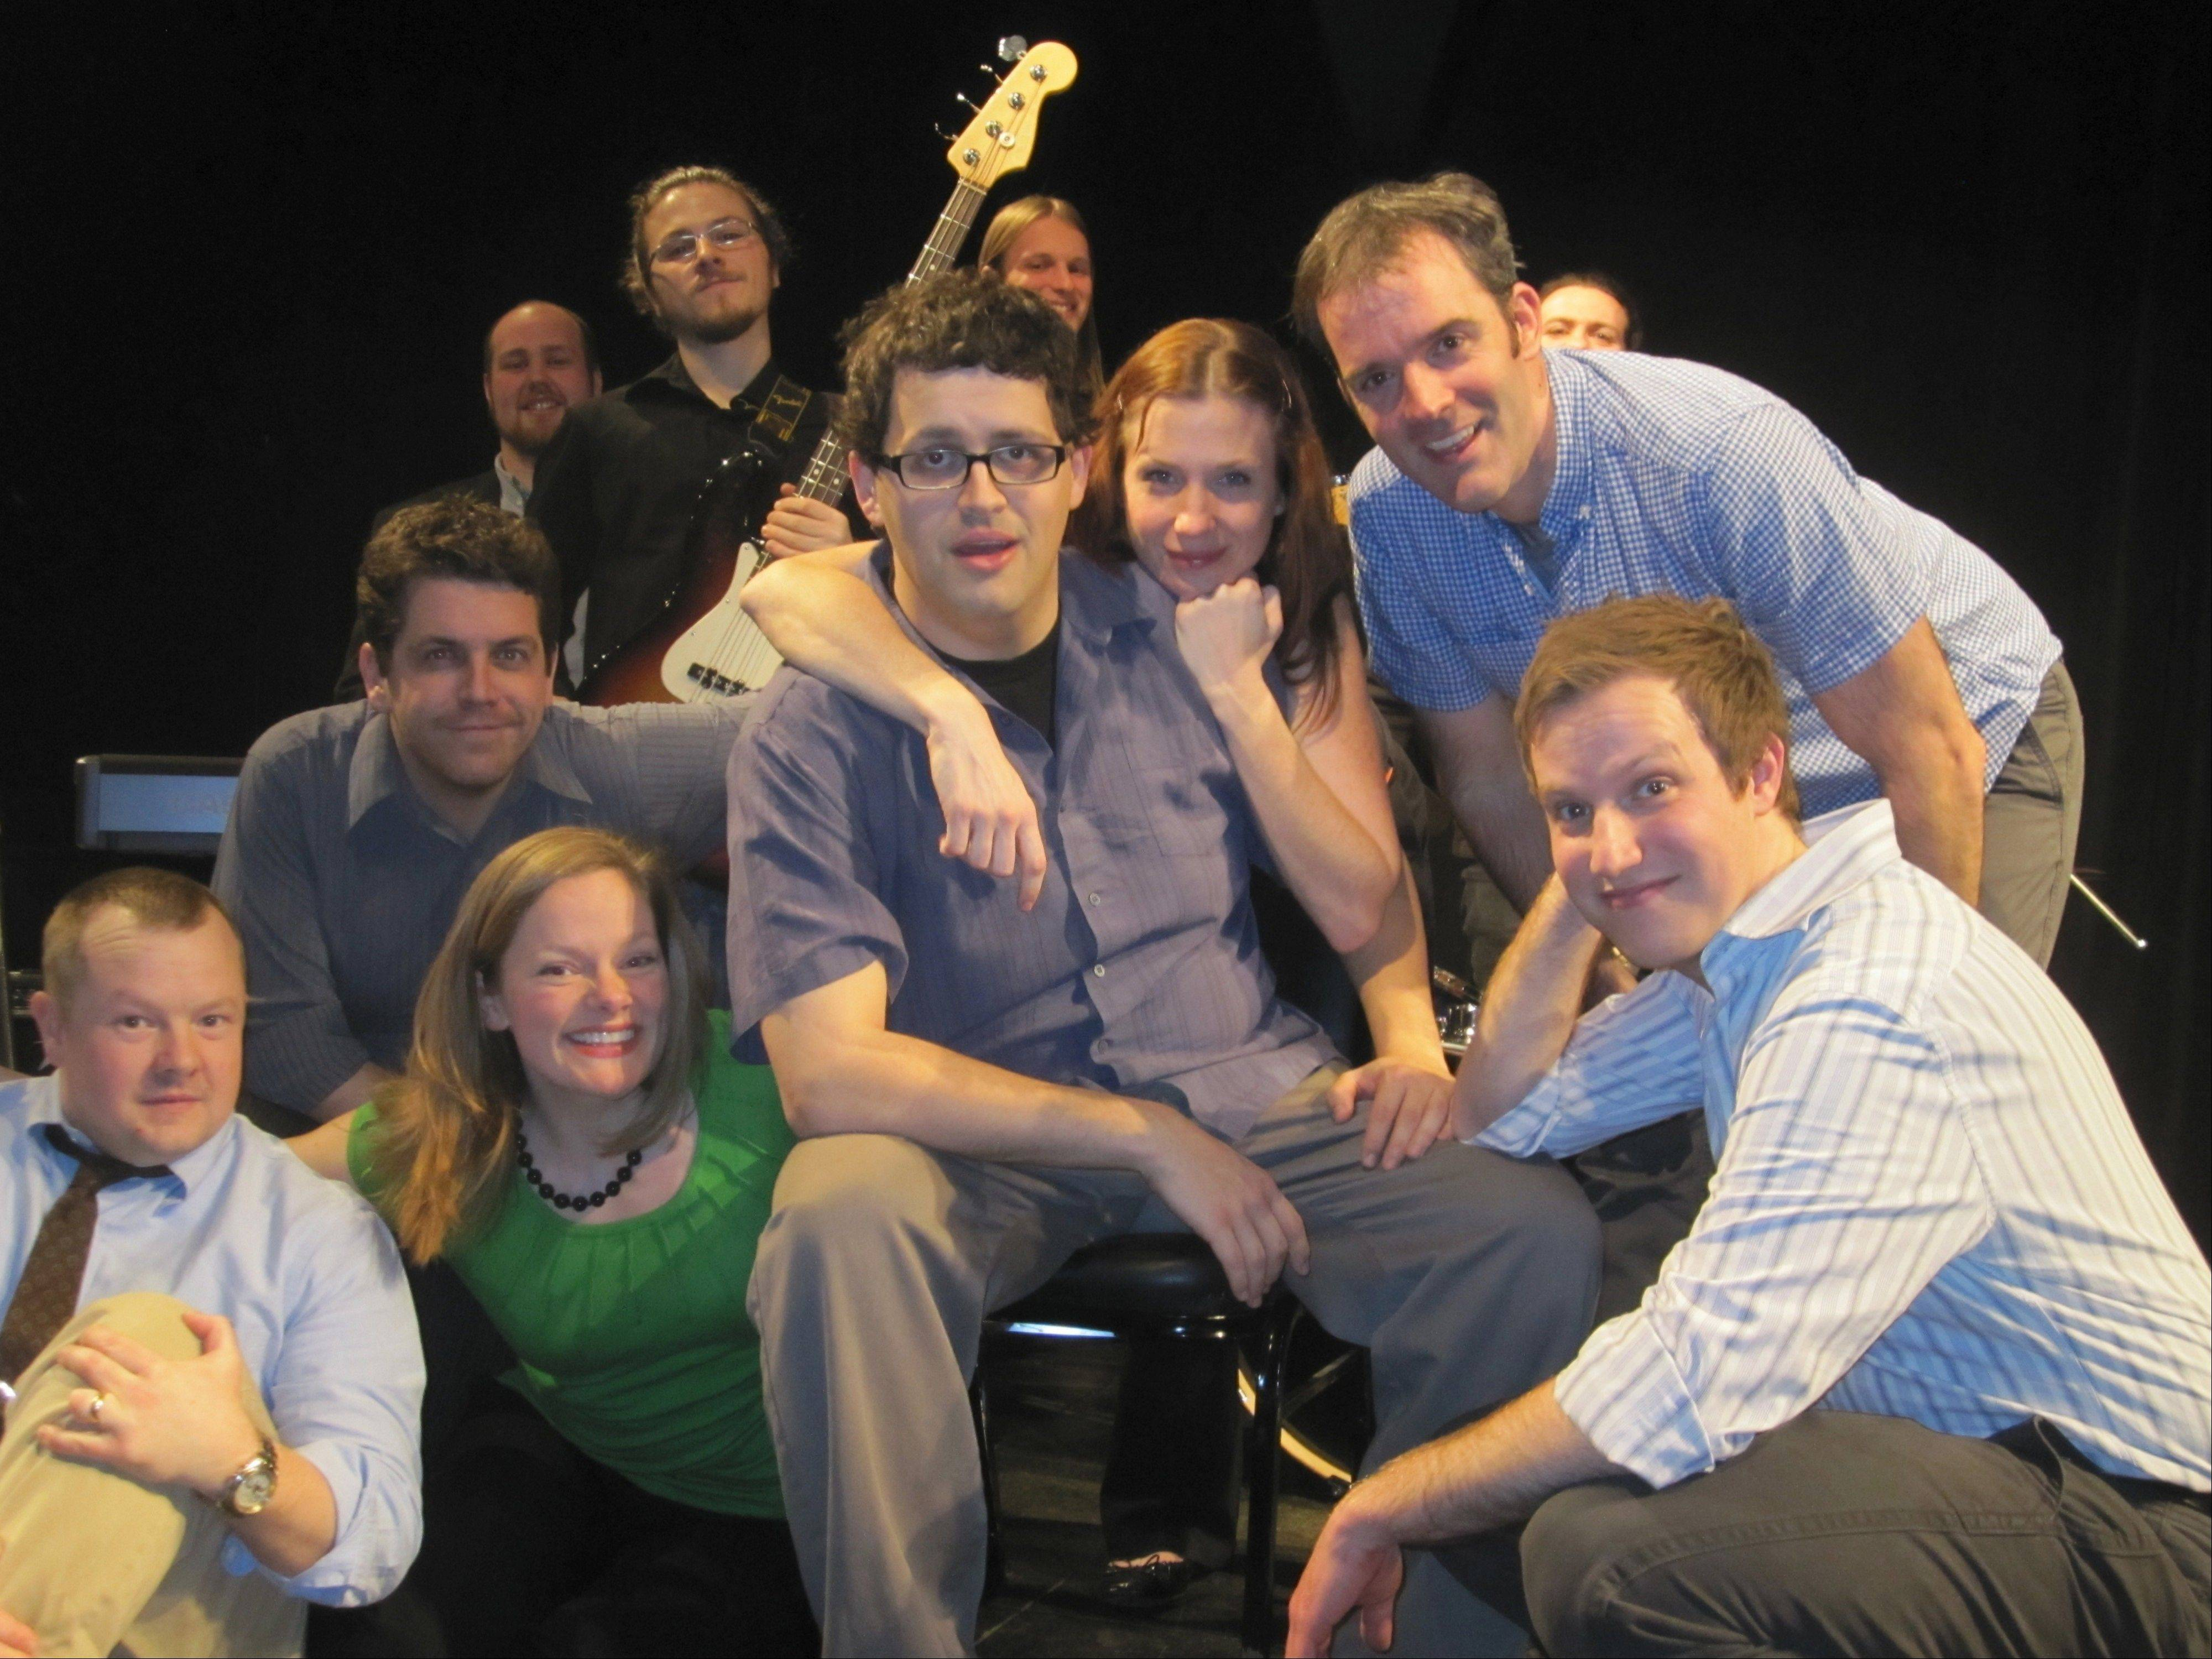 The Chicago troupe Baby Wants Candy will make a special performance at Cutting Hall in Palatine.